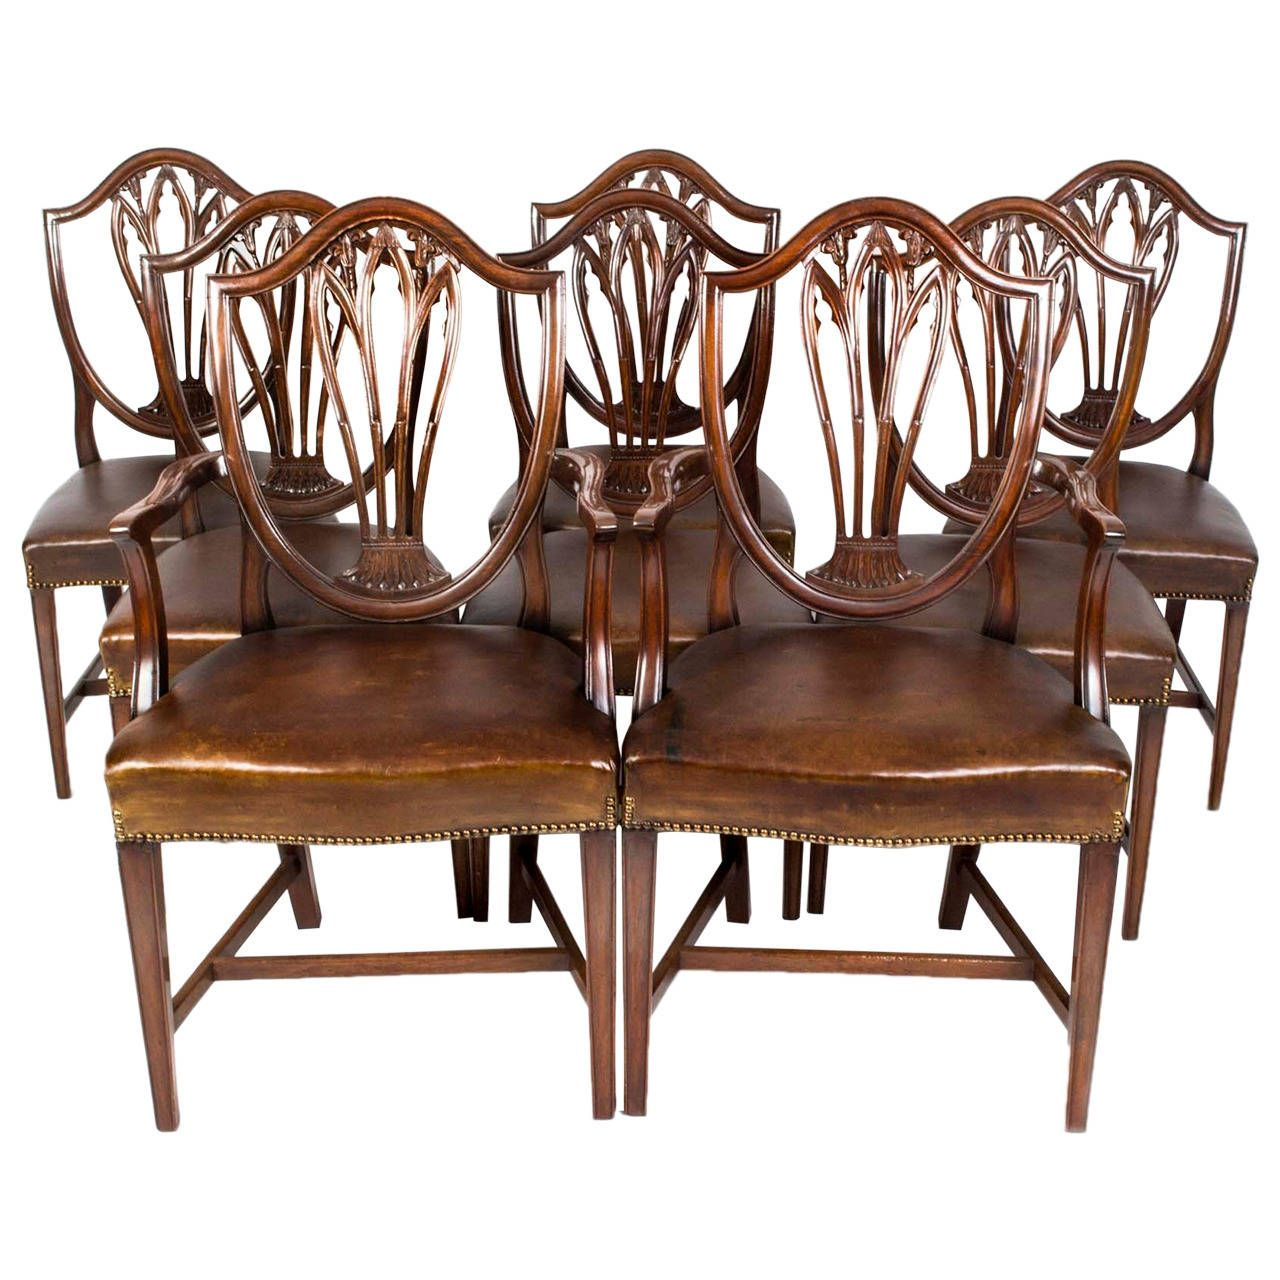 Enjoyable Antique Set 8 English Hepplewhite Dining Chairs C 1900 Alphanode Cool Chair Designs And Ideas Alphanodeonline